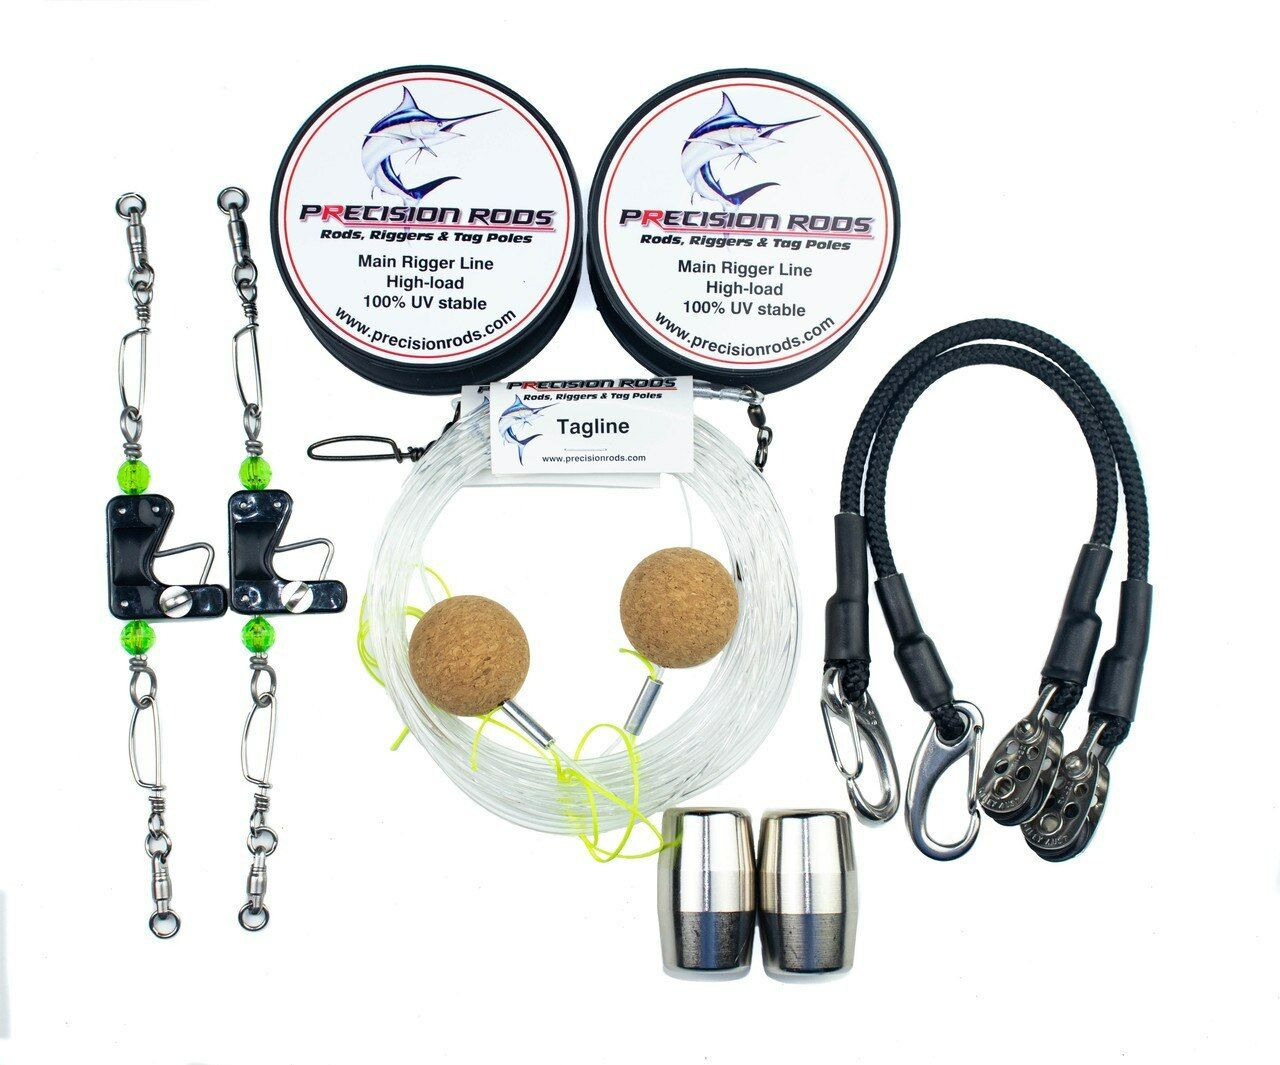 NEW Precision Outrigger Rigging Kit Stainless 18ft-20ft from bluee Bottle Marine